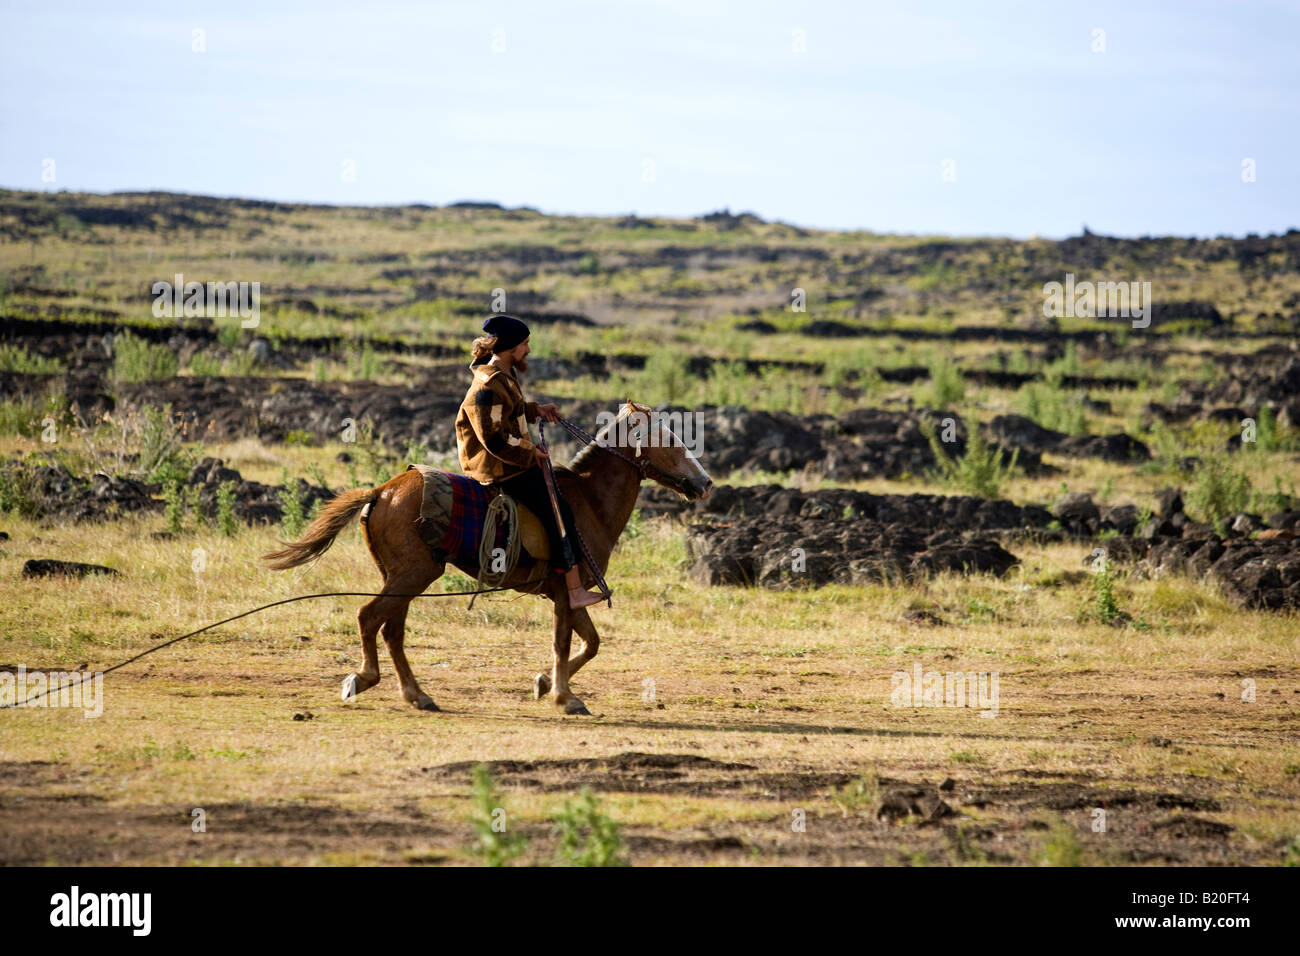 Cowboy Easter Island Chile